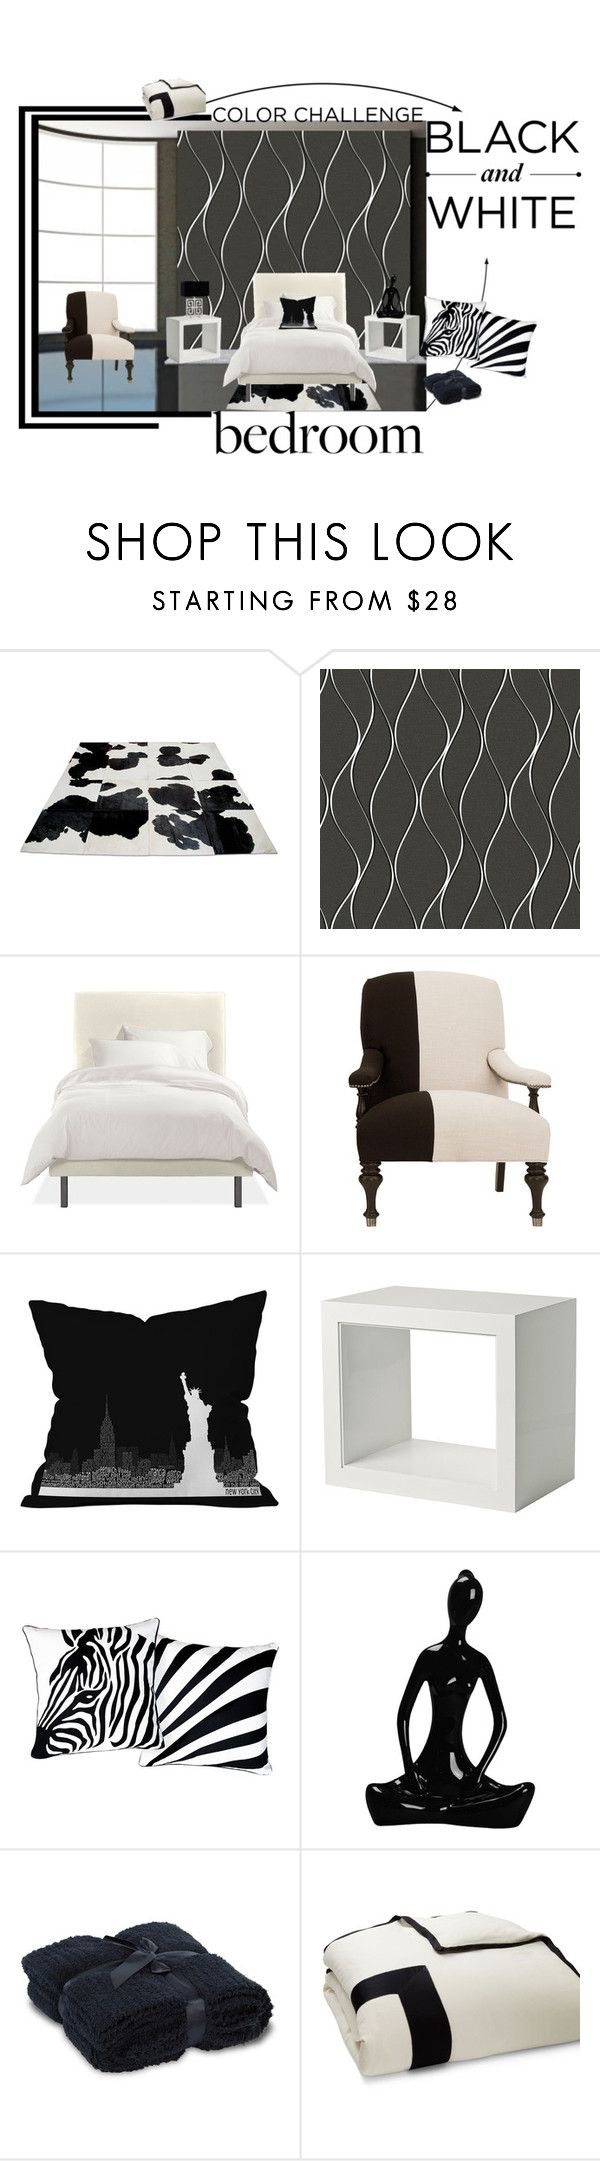 """Camera da letto in bianco e nero"" by nicolevalents ❤ liked on Polyvore featuring interior, interiors, interior design, home, home decor, interior decorating, York Wallcoverings, DENY Designs, Serena & Lily and AF Lighting"